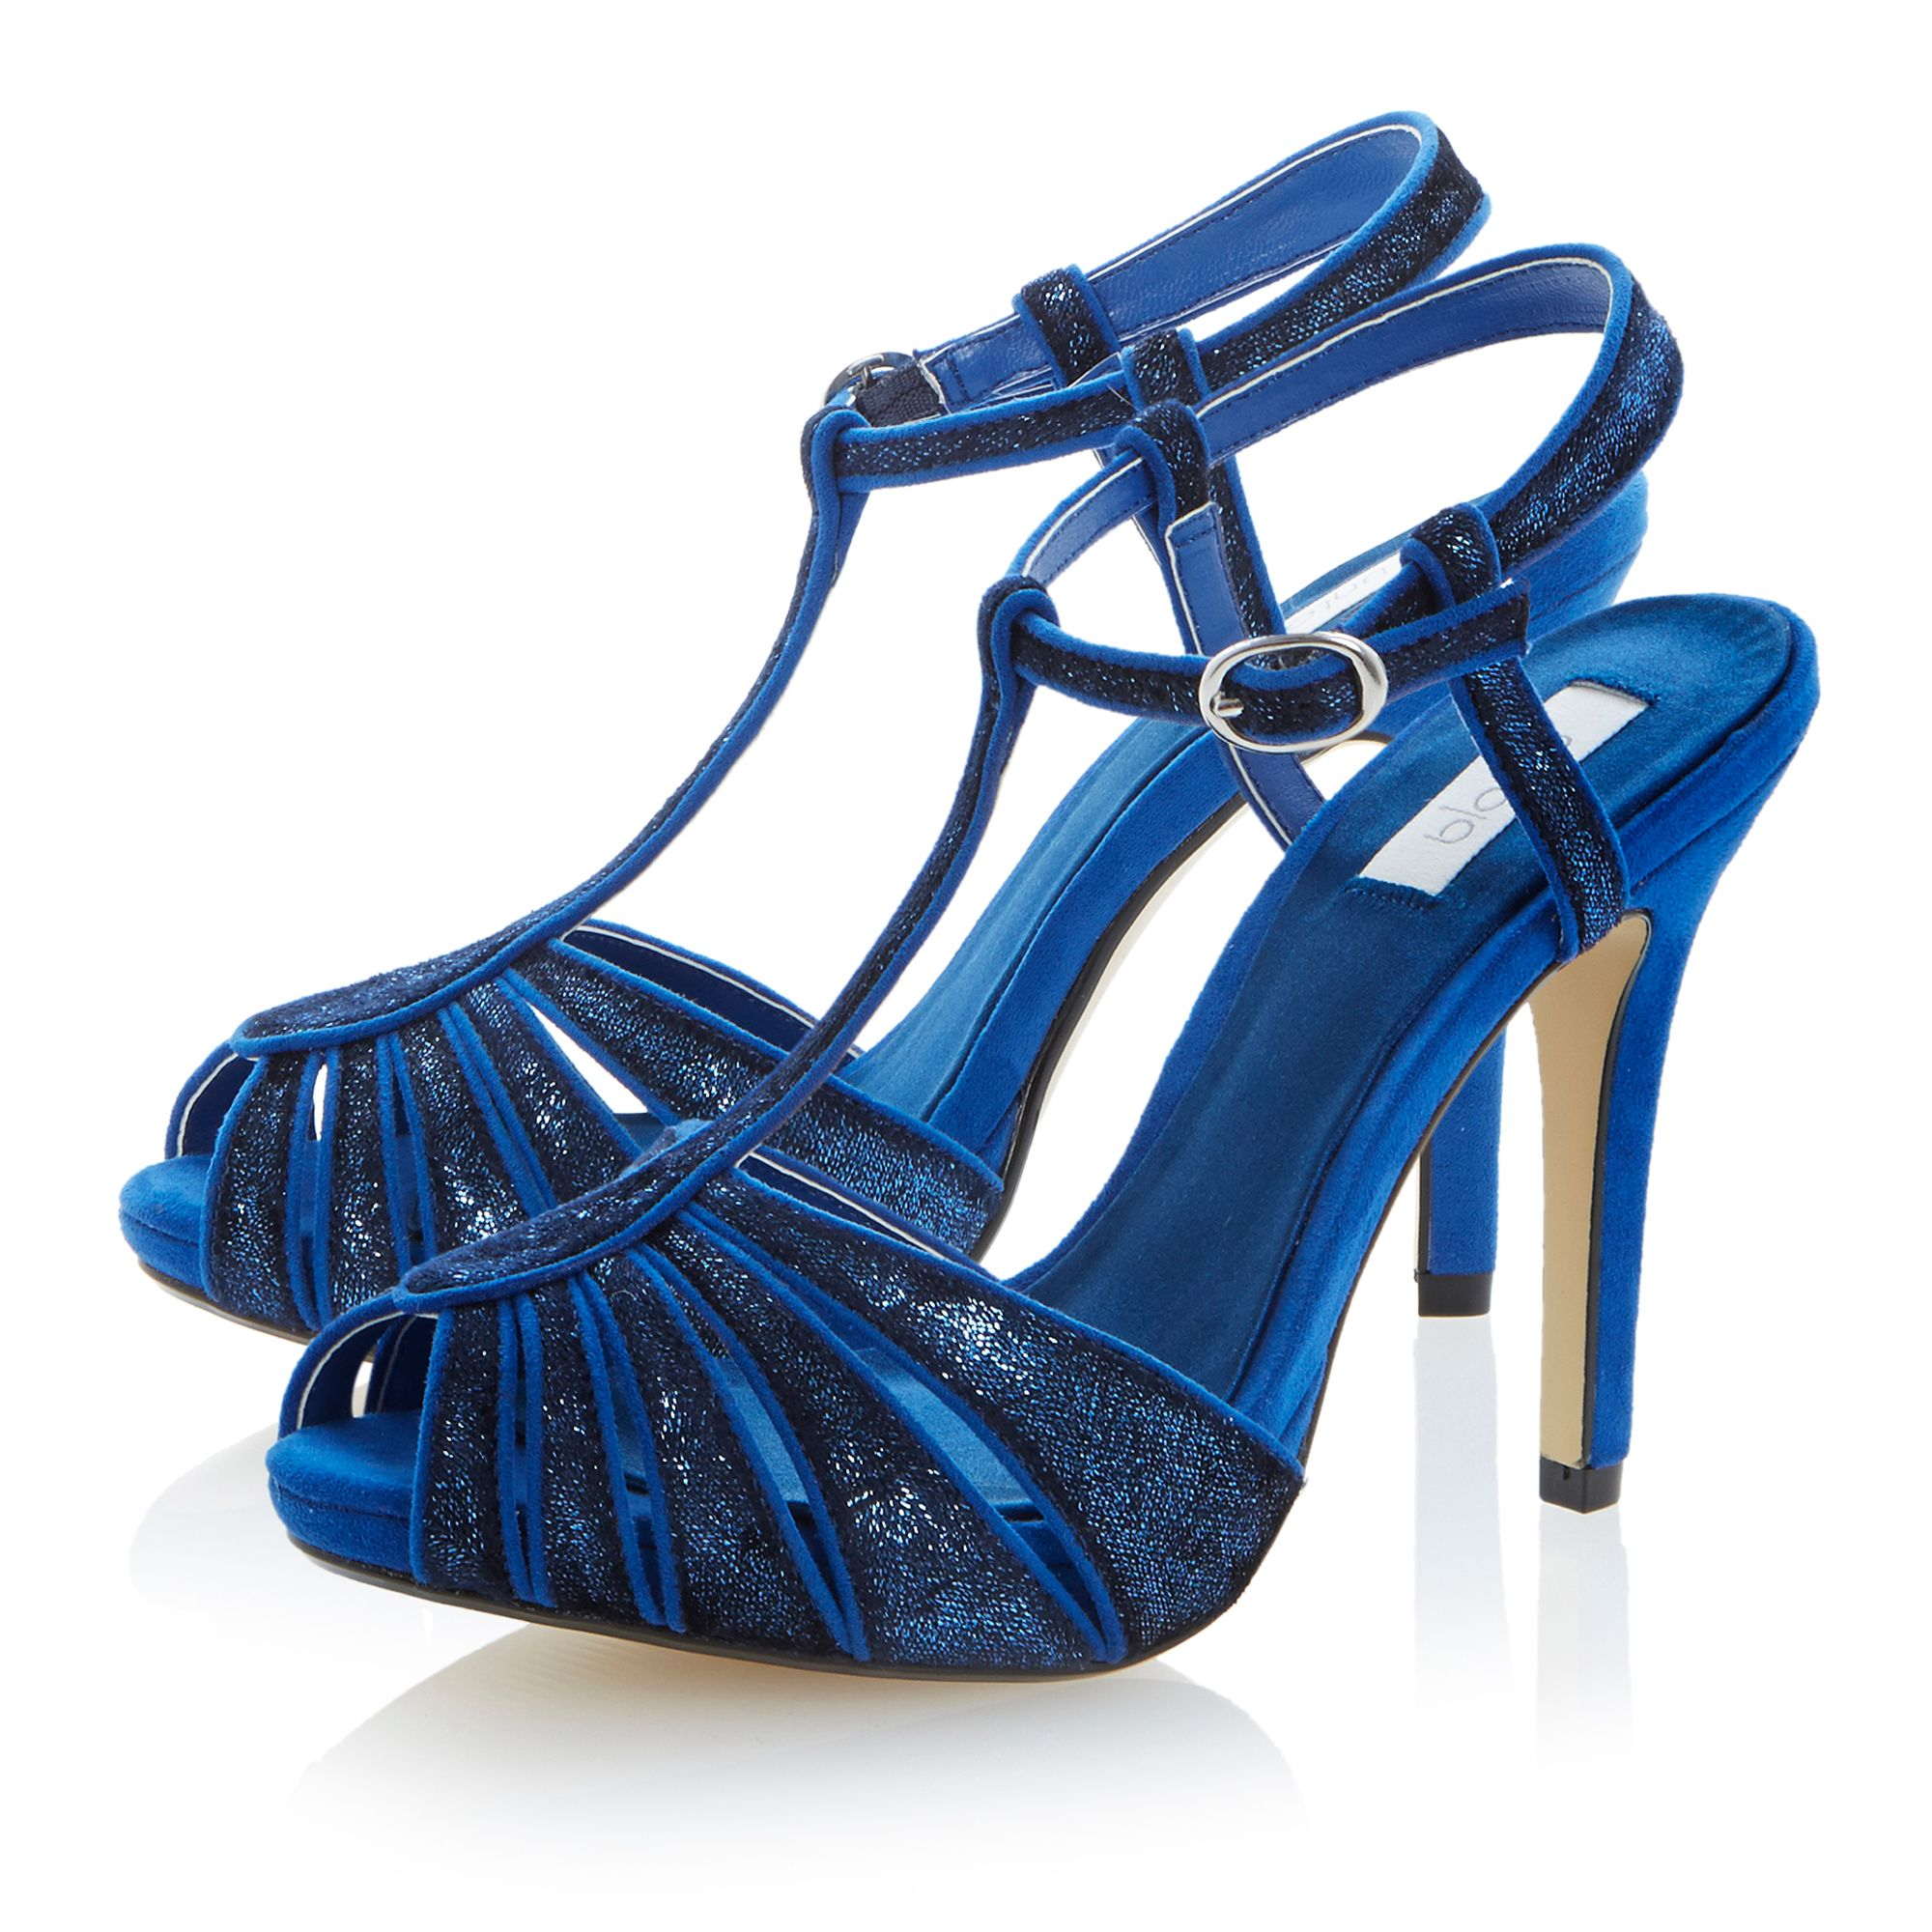 Hydrangea stiletto t-bar platform sandals